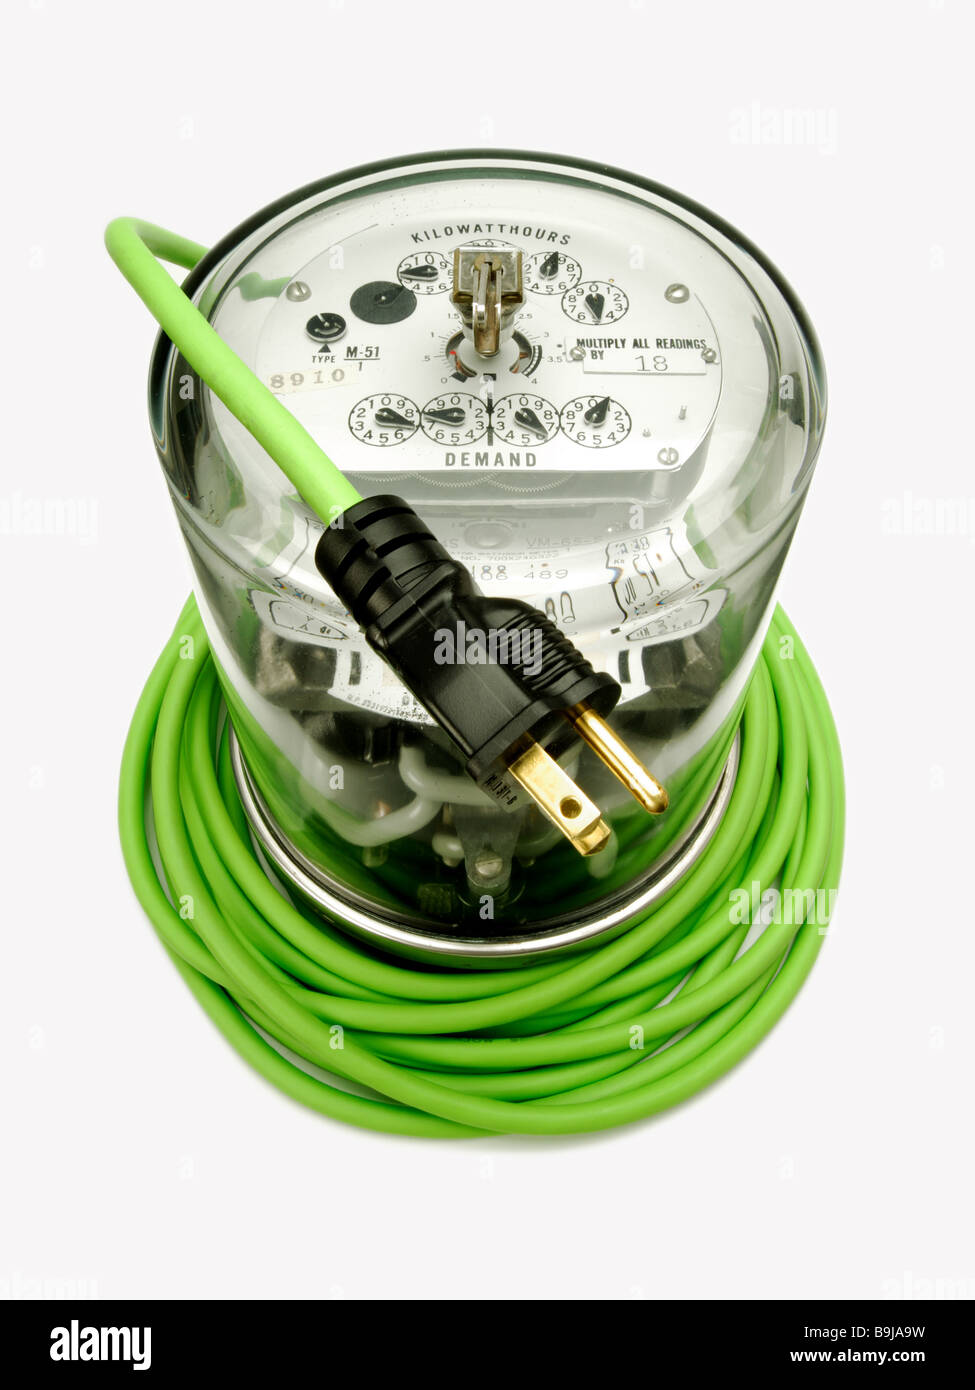 Electric power meter wrapped by a green electrical extension cord and plug - Stock Image